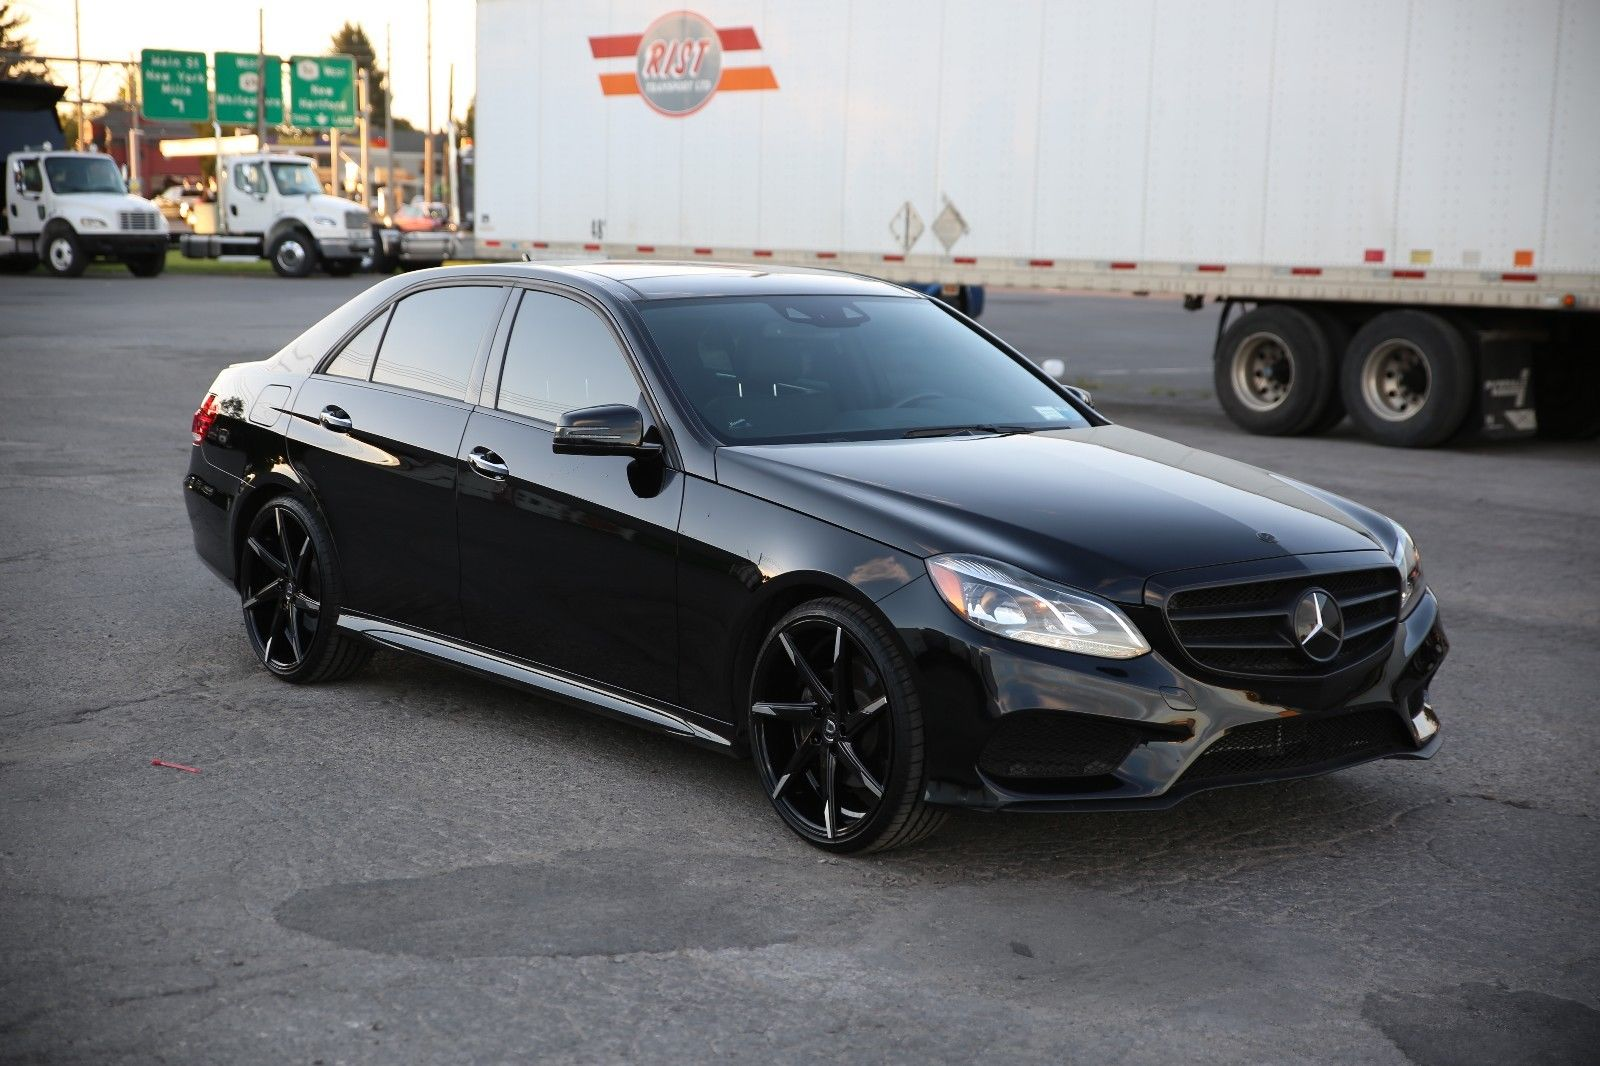 2014 mercedes benz w212 facelift e350 black on black